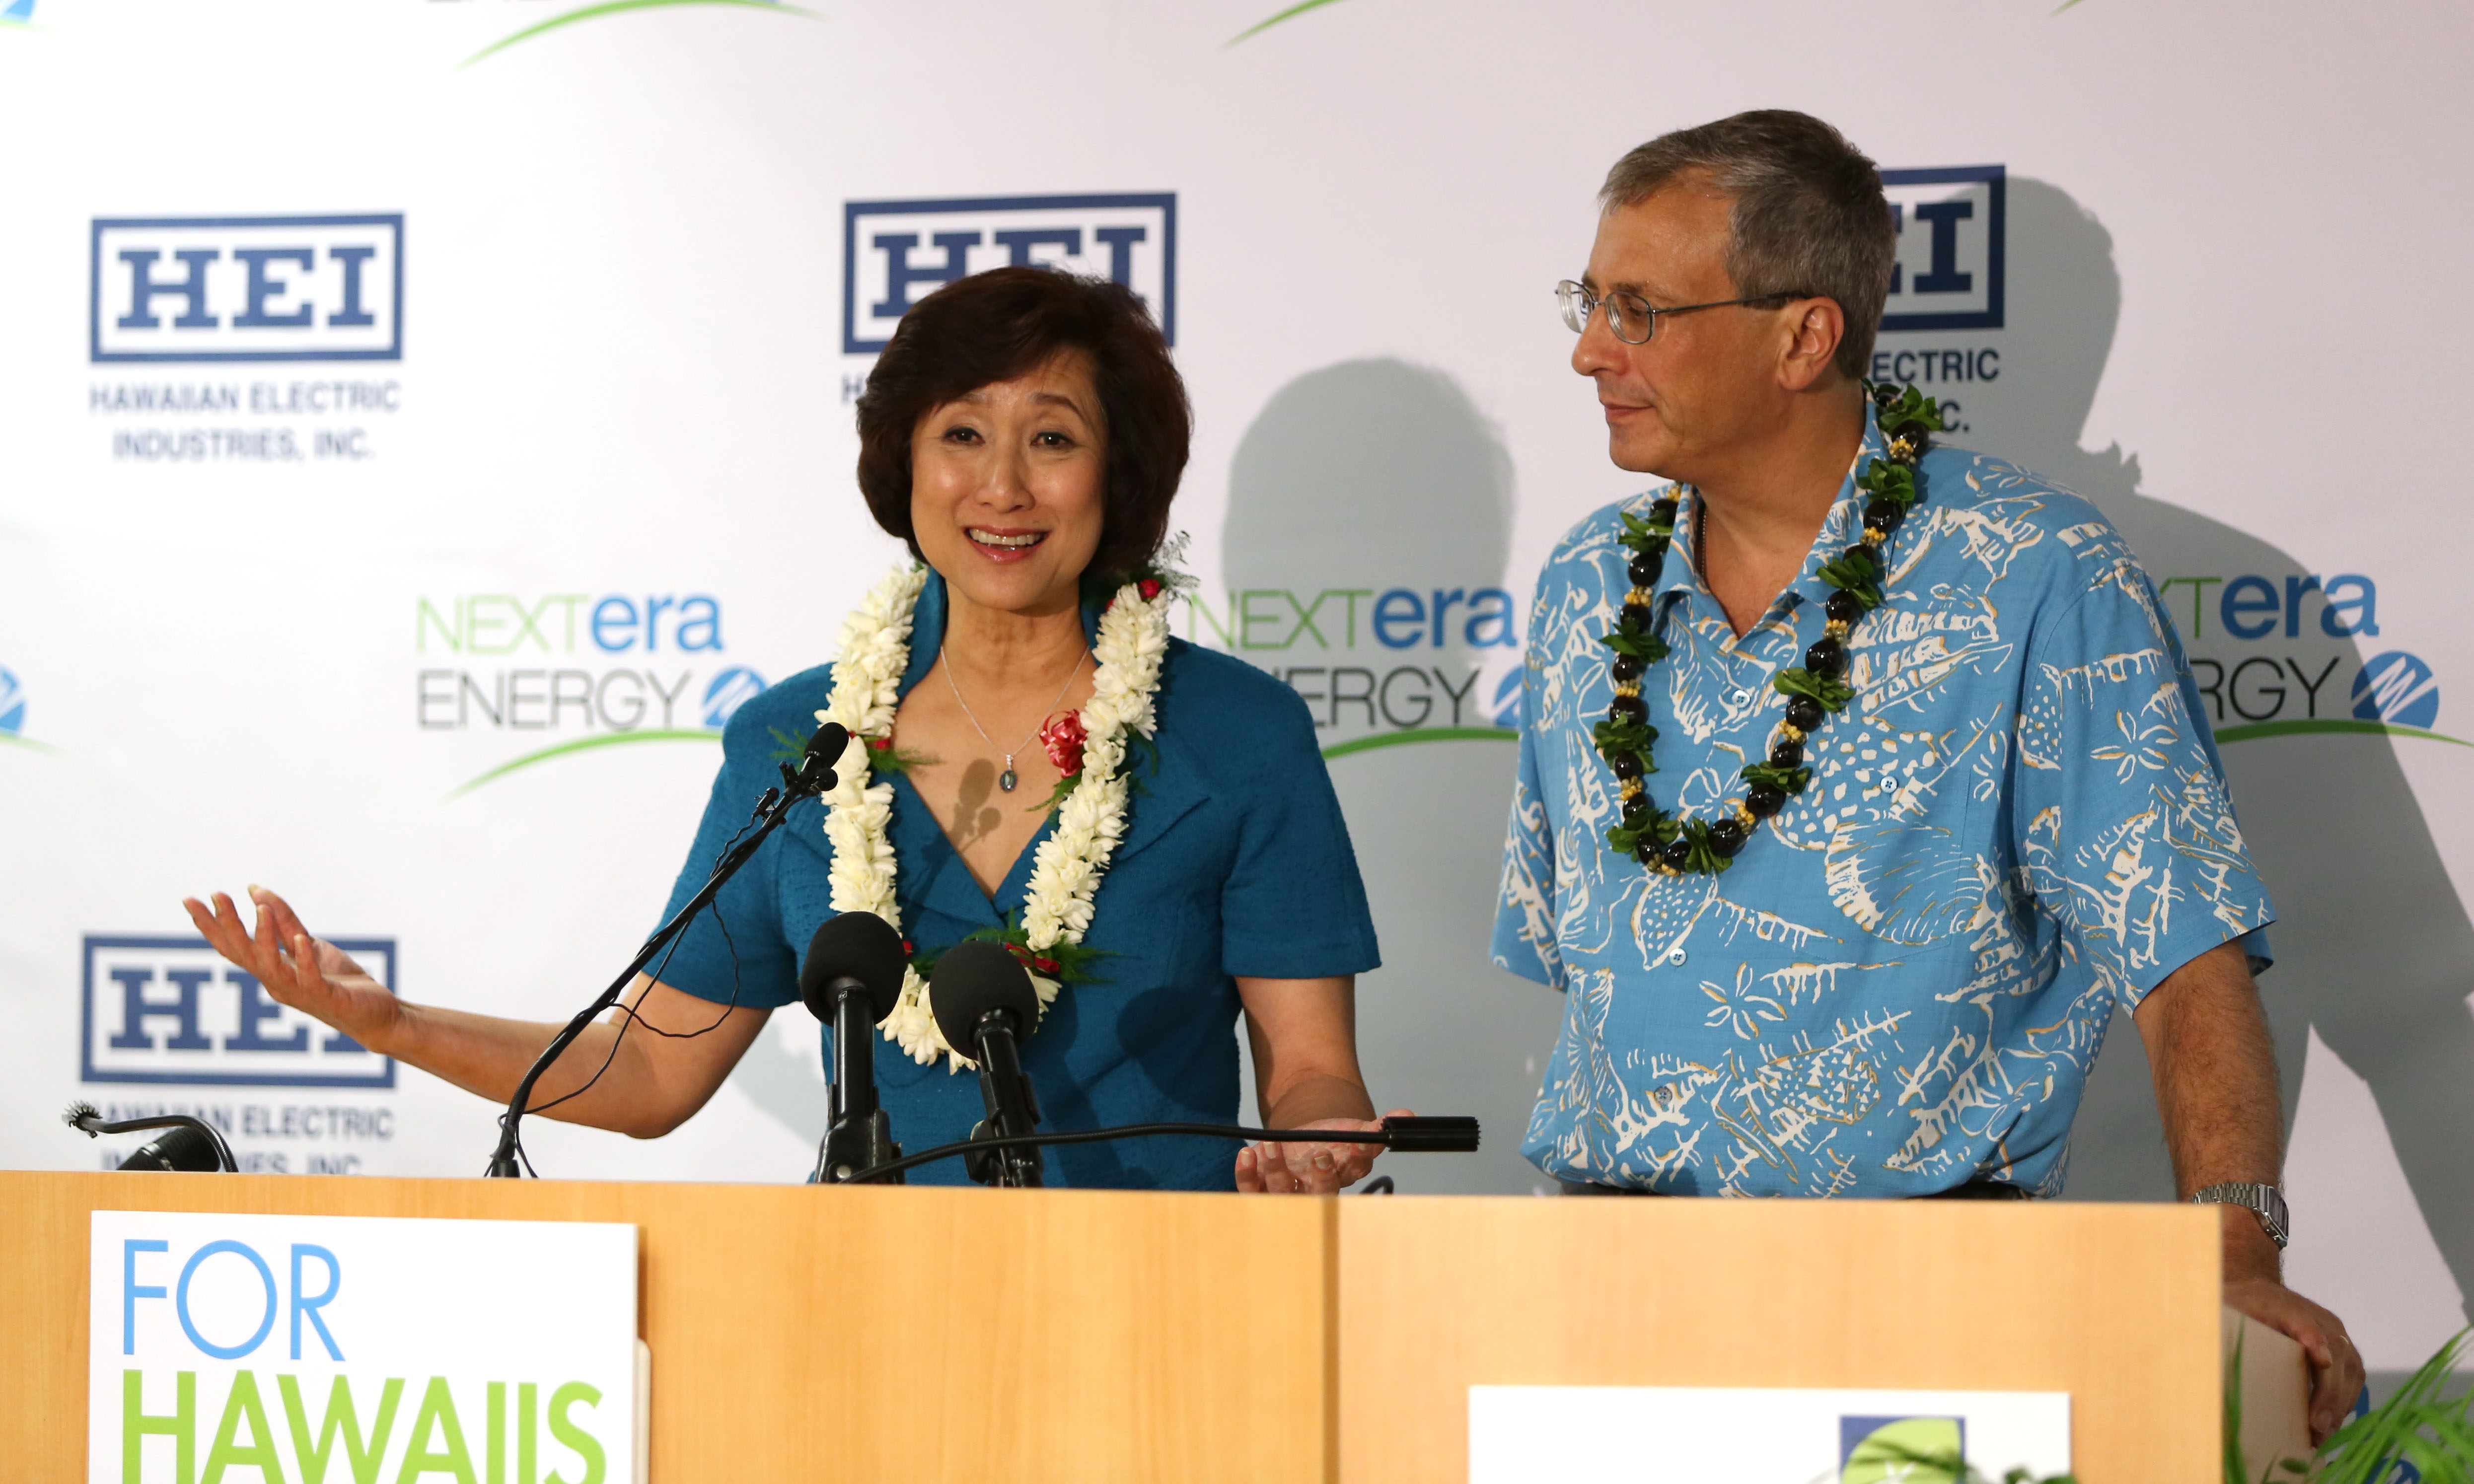 Connie Lau, President and CEO Hawaiian Electric Industries and Jim Robo Chairman and CEO, NEXTERA Energy, Inc. announce a merger with NEXTERA at suite 800, 1001 Bishop Street. Honolulu, Hawaii.  3 dec 2014. photograph by Cory Lum